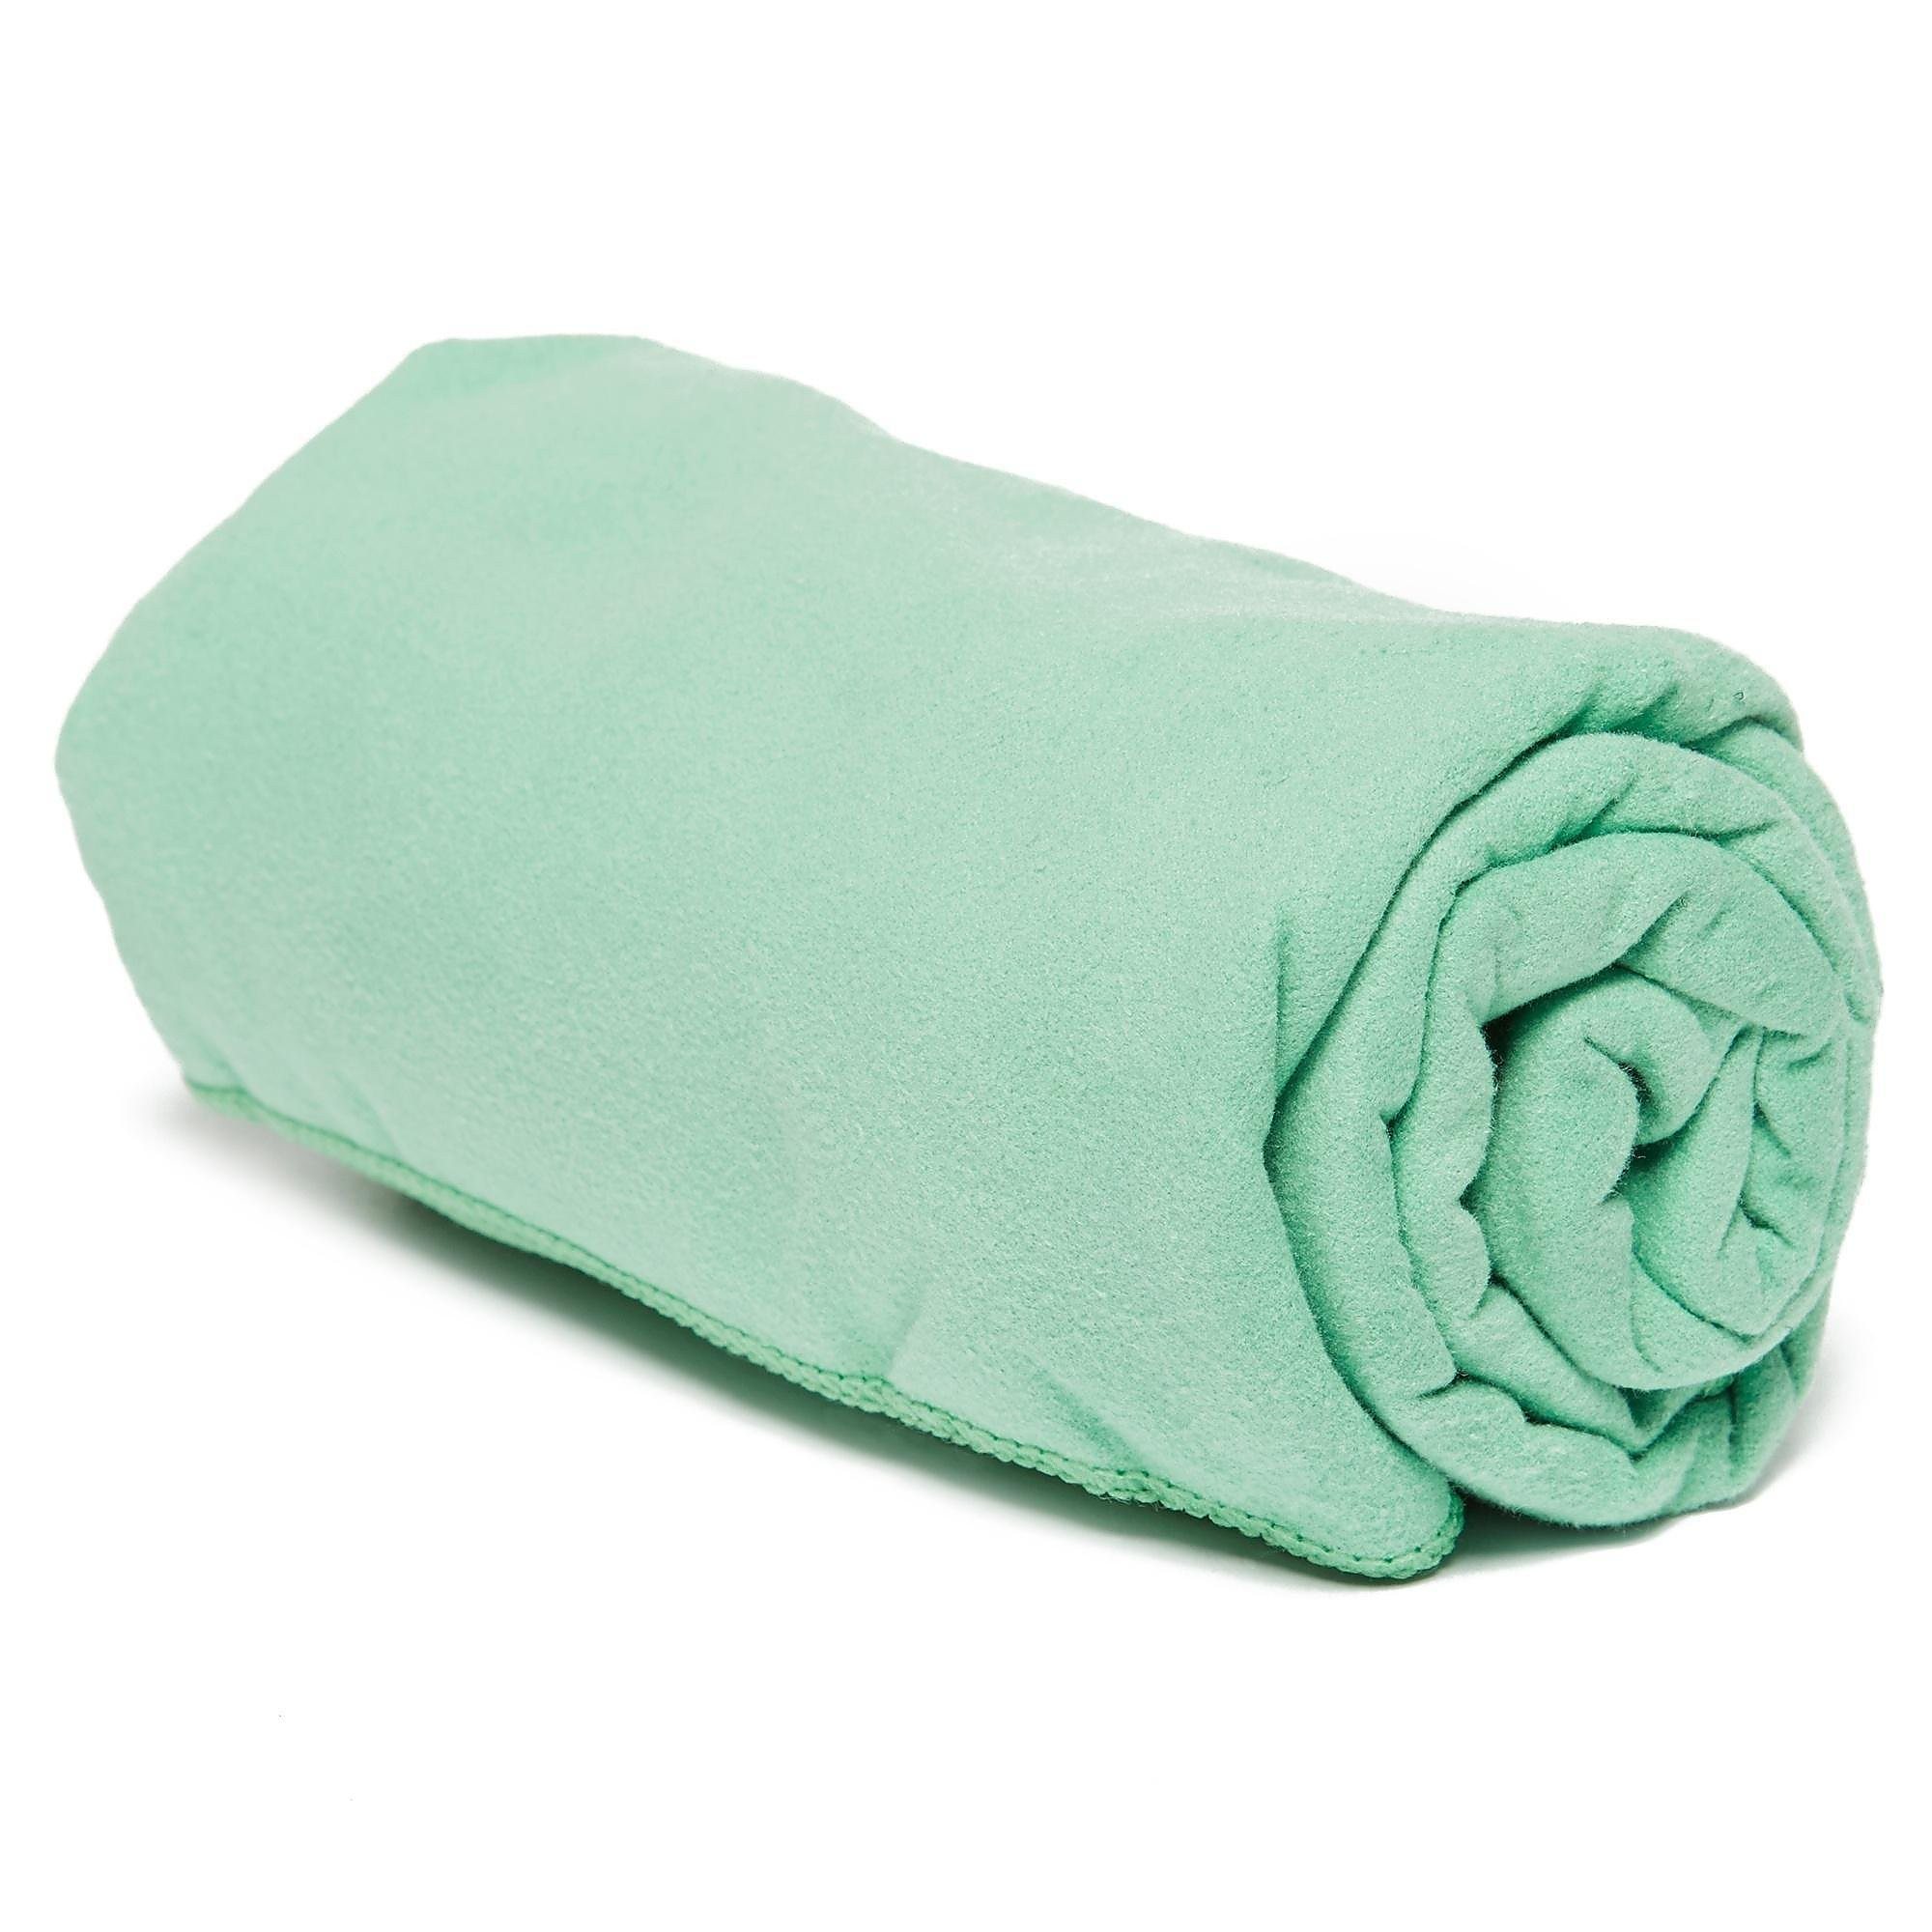 EUROHIKE Suede Microfibre Travel Towel - Medium